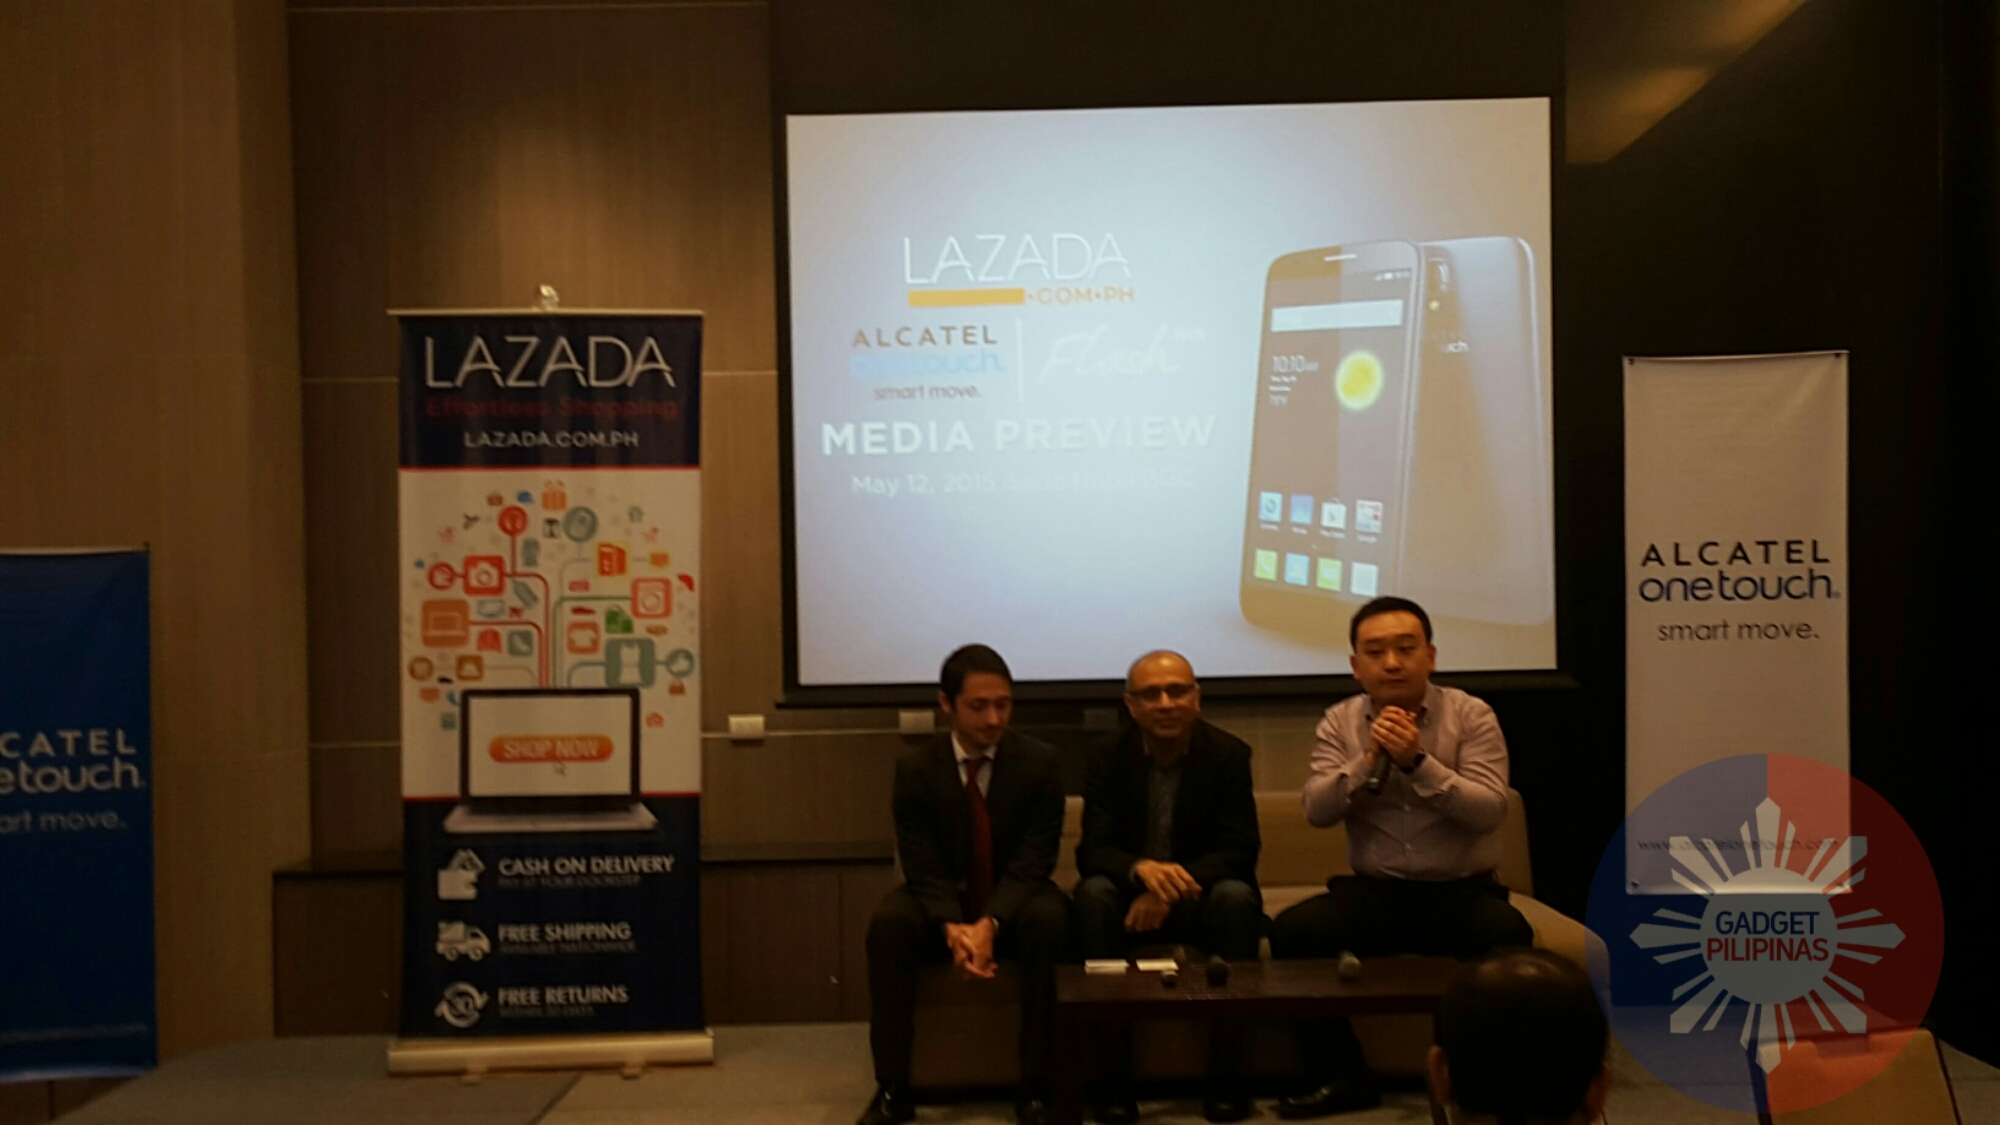 , 64-Bit Octa-Core Alcatel Flash Plus is Coming this May 15 via Lazada, Priced at PhP6,490, Gadget Pilipinas